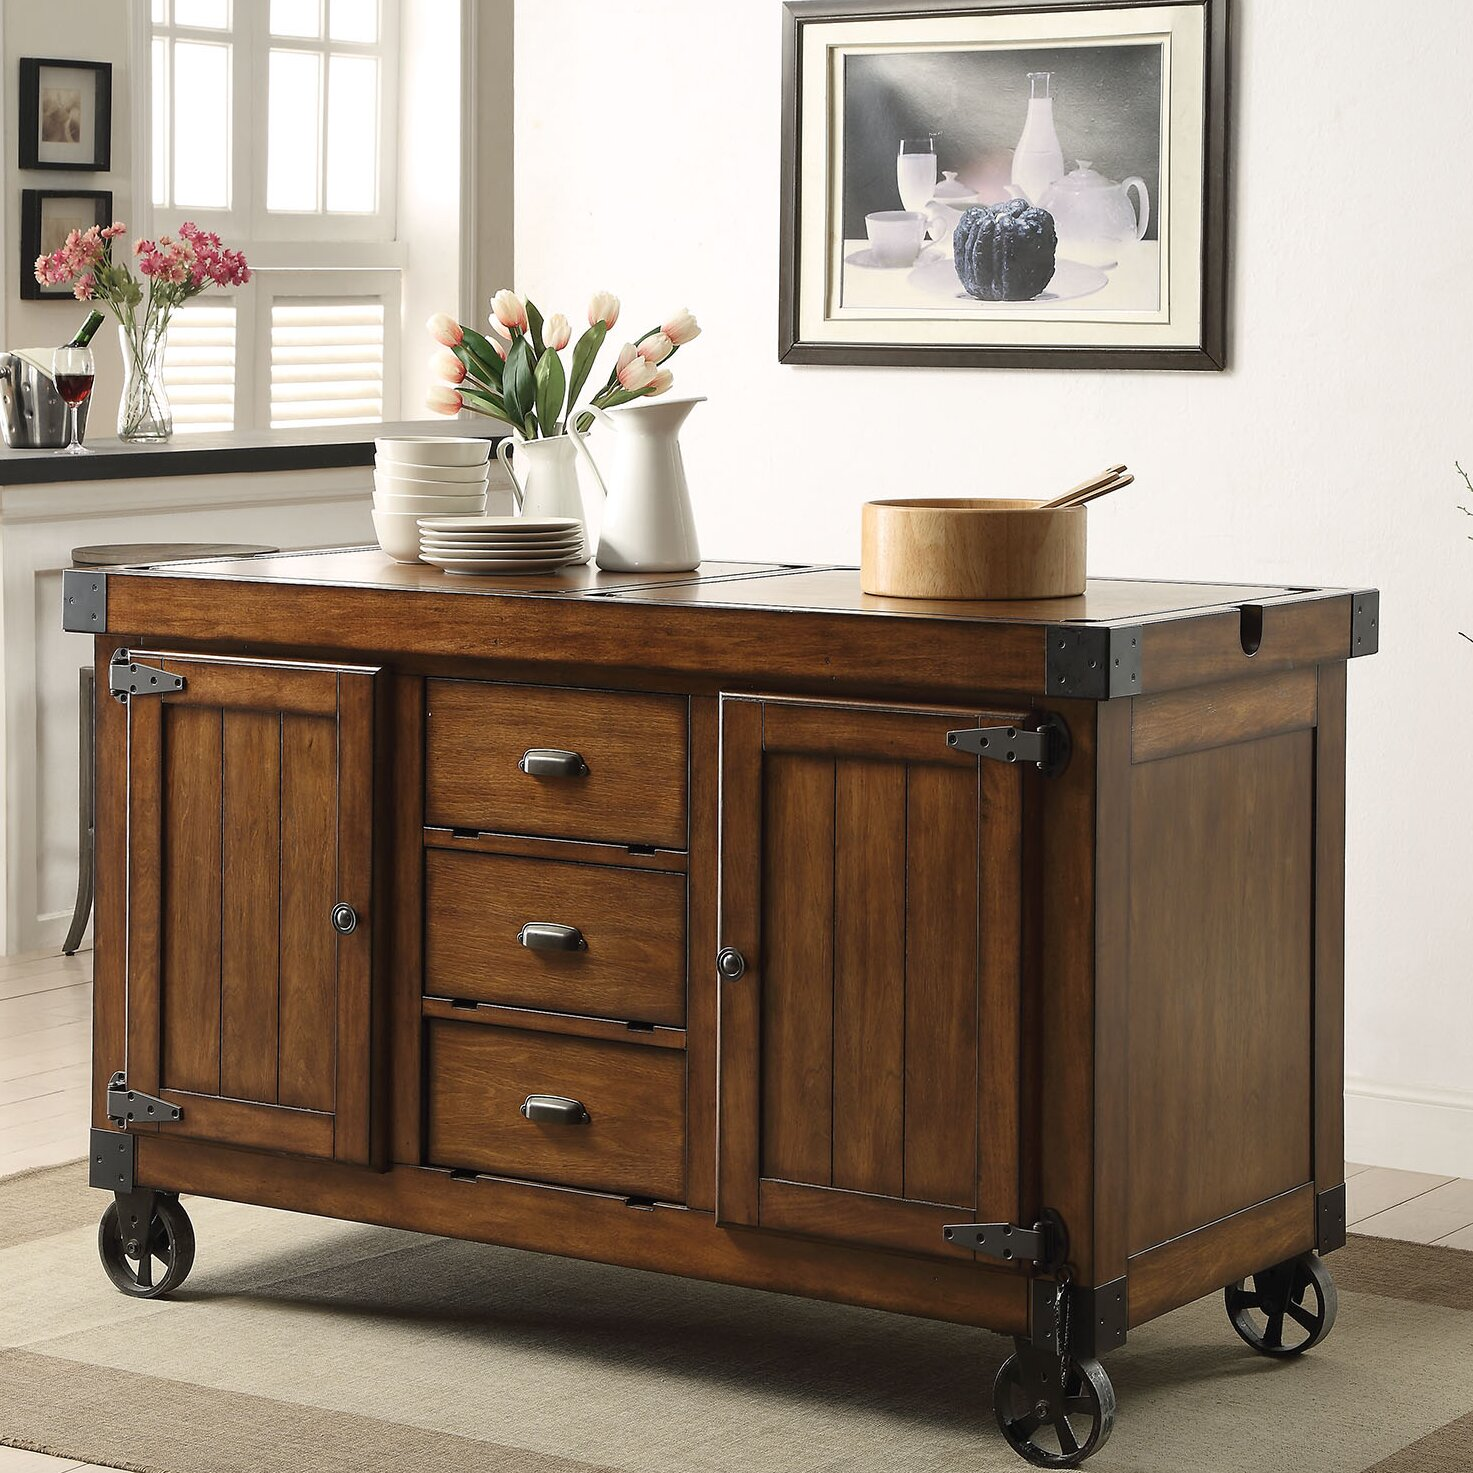 kitchen islands and carts furniture acme furniture kabili kitchen cart wayfair 24833